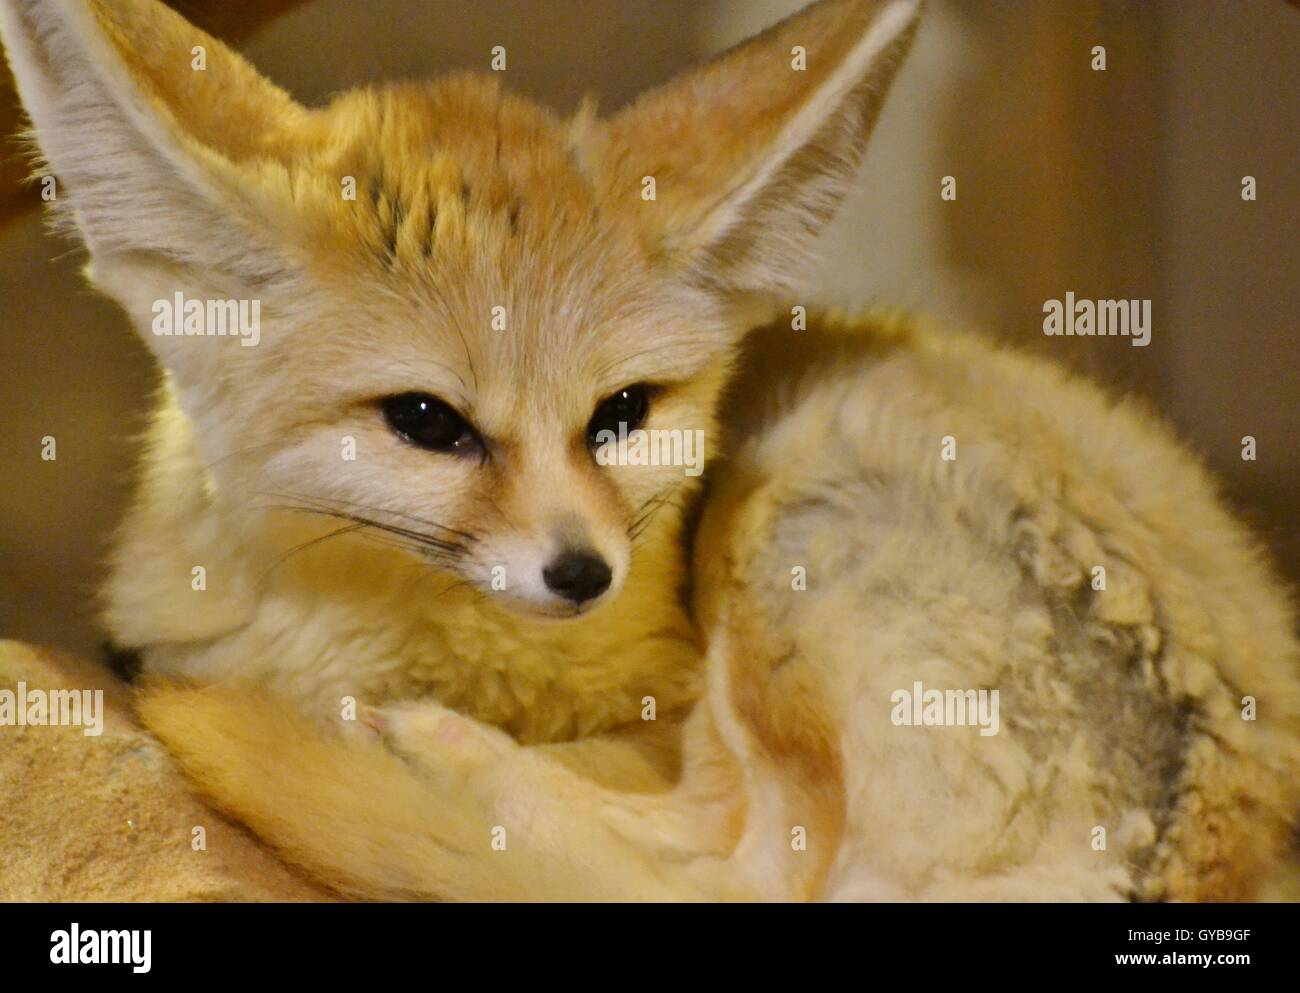 The Fennec Fox (Vulpes zerda) is a small fox found in the Sahara Desert of North Africa famous for its large ears. - Stock Image